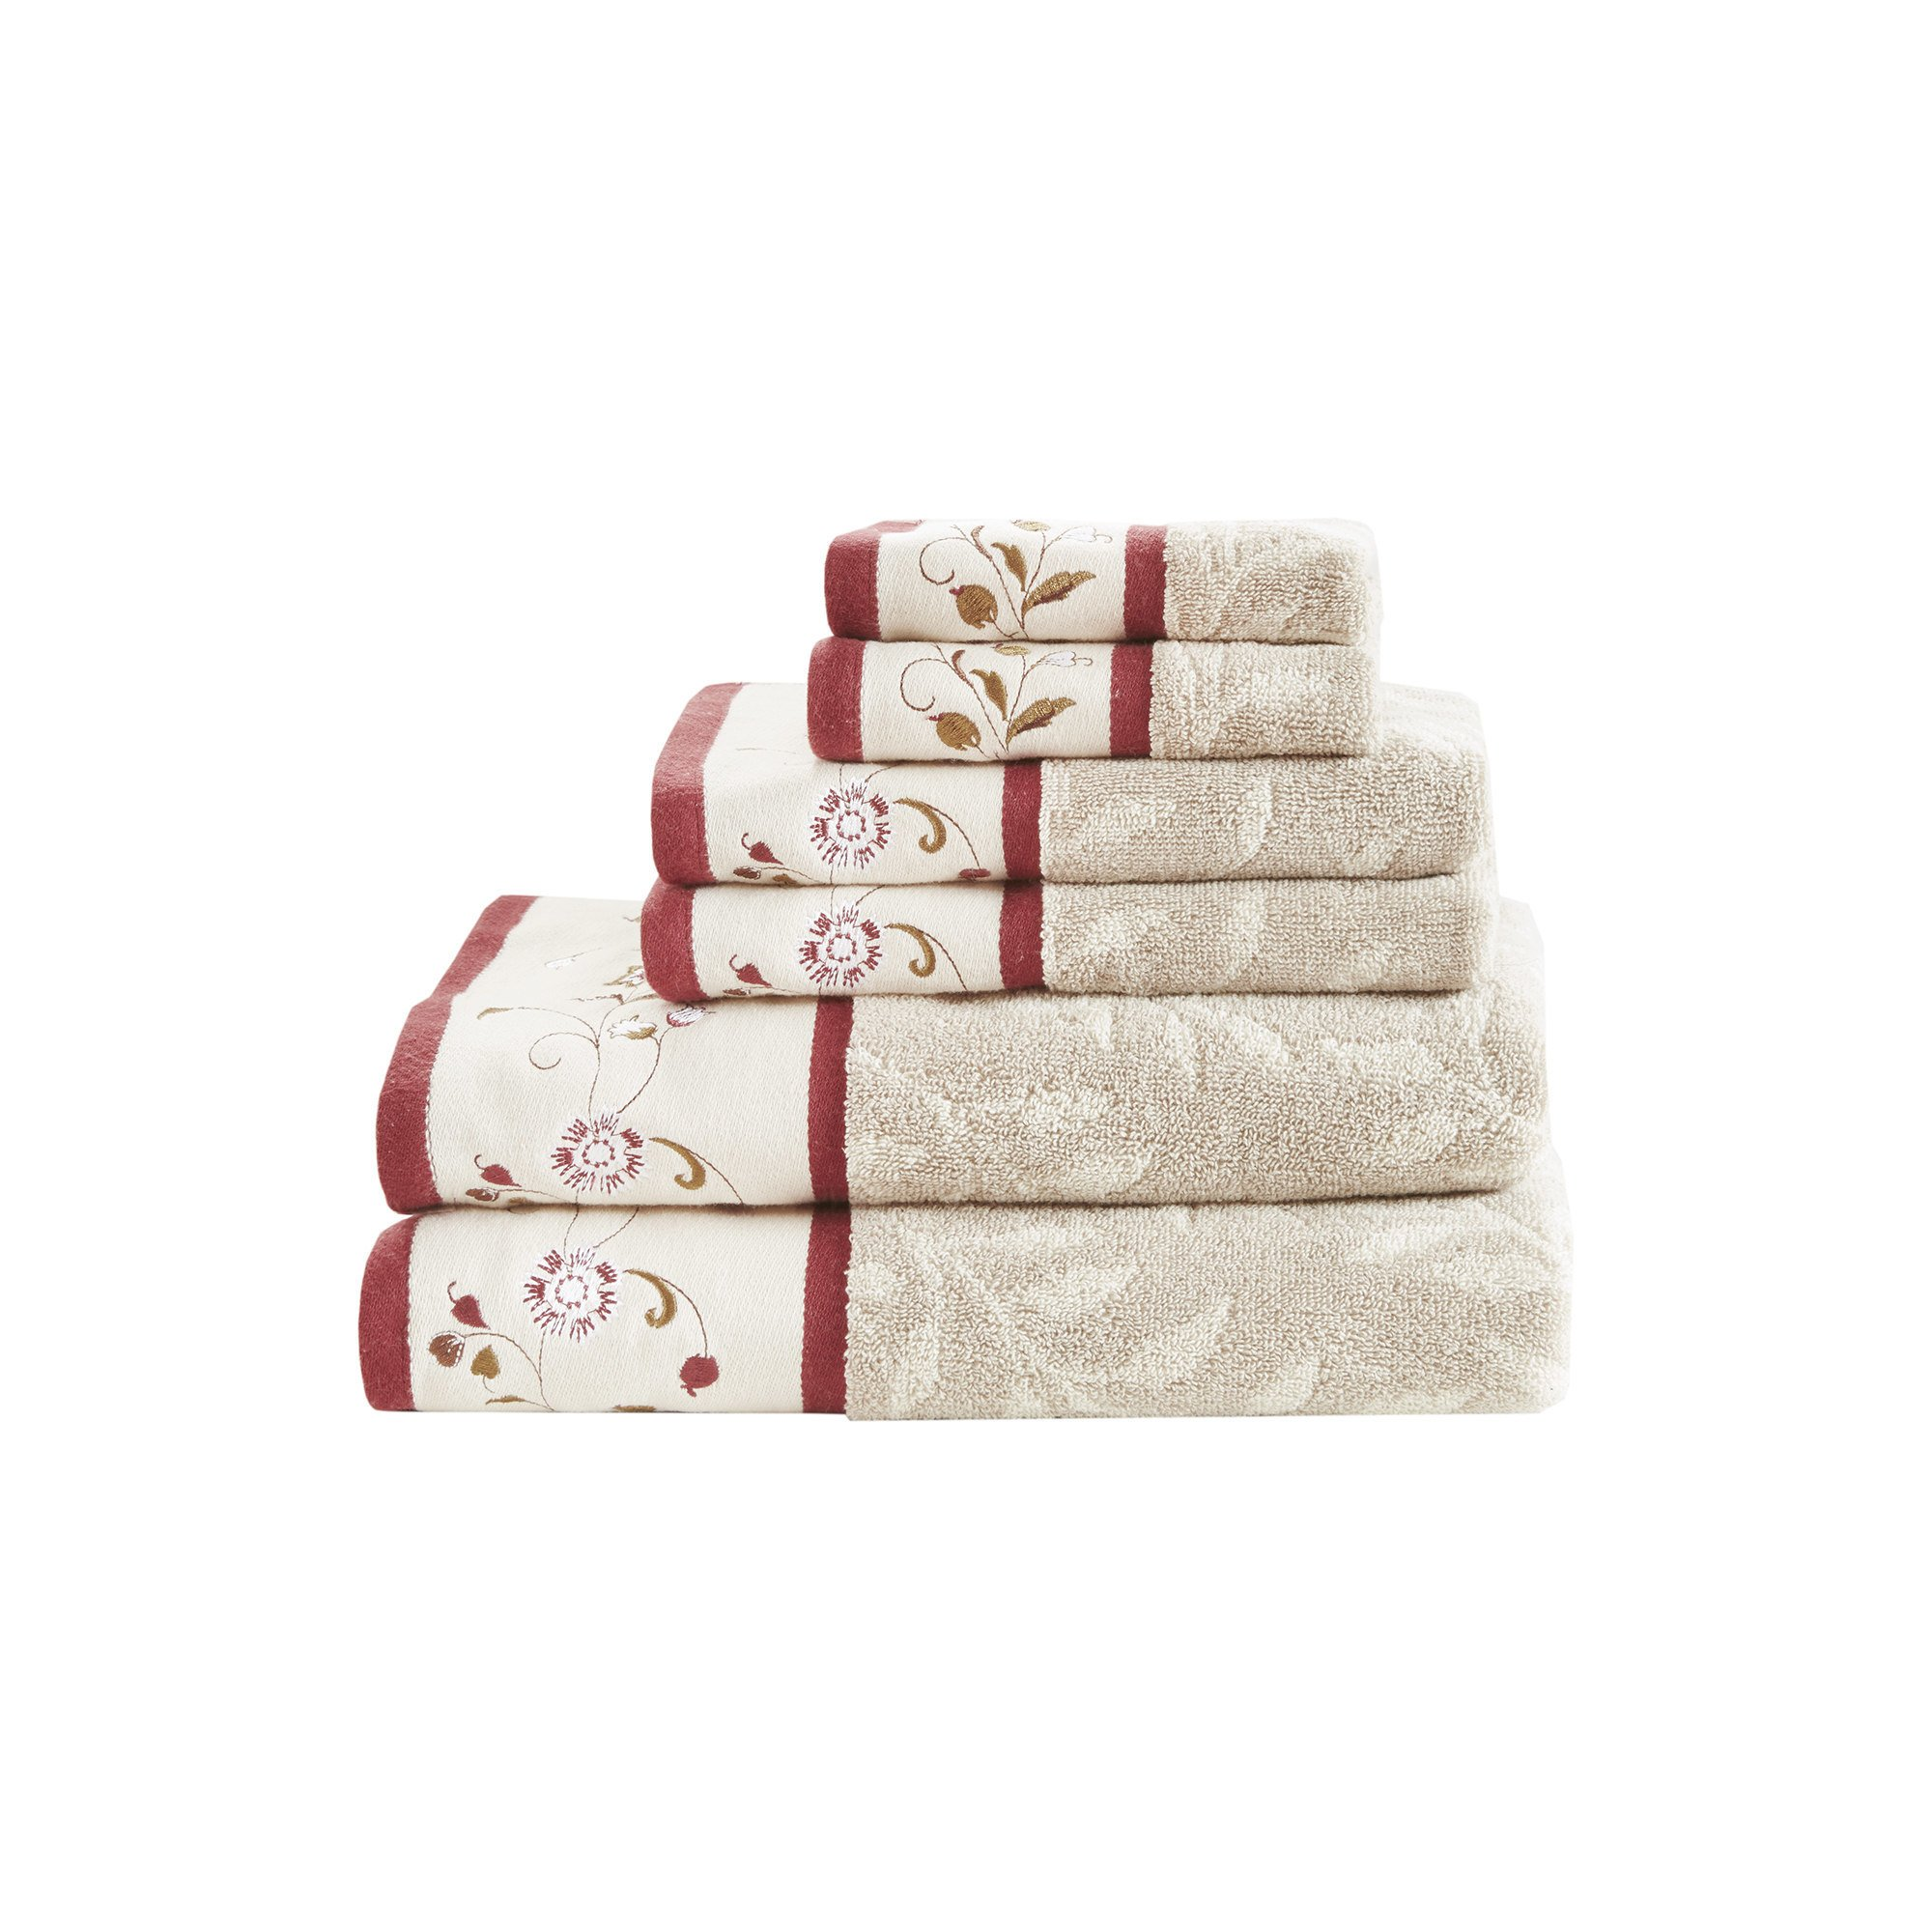 6 Piece Red Floral Embroidered Towel Set, Beige White Jacquard Leaf Motif Flowers Embroider Hem Theme Towels, Rich Hues Soft Water Absorbent Elegant Bathroom Hand, Cotton Terry Cloth